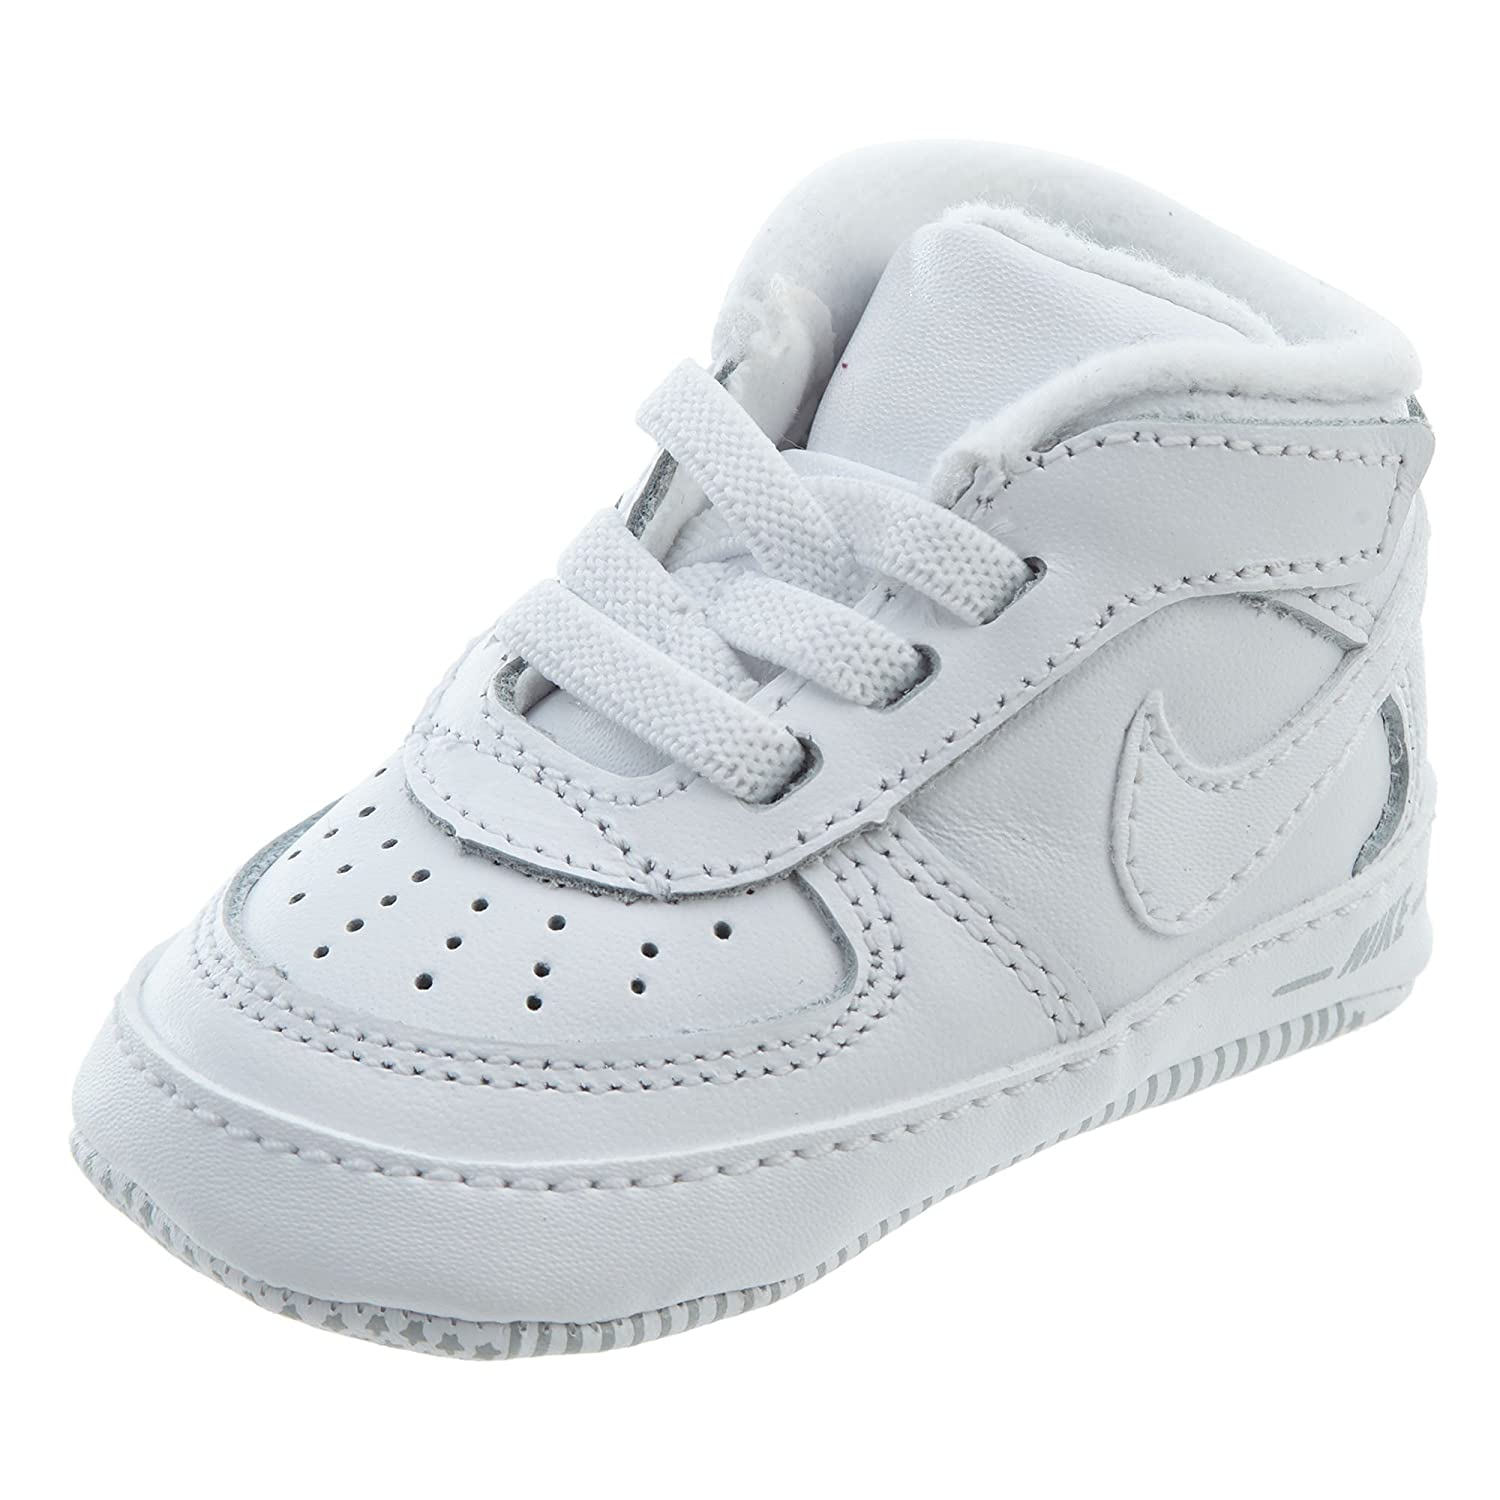 Nike Unisex Babies Force 1 (Cb) Open Back Slippers Red White  Amazon.co.uk   Shoes   Bags bd3a255ba3d3